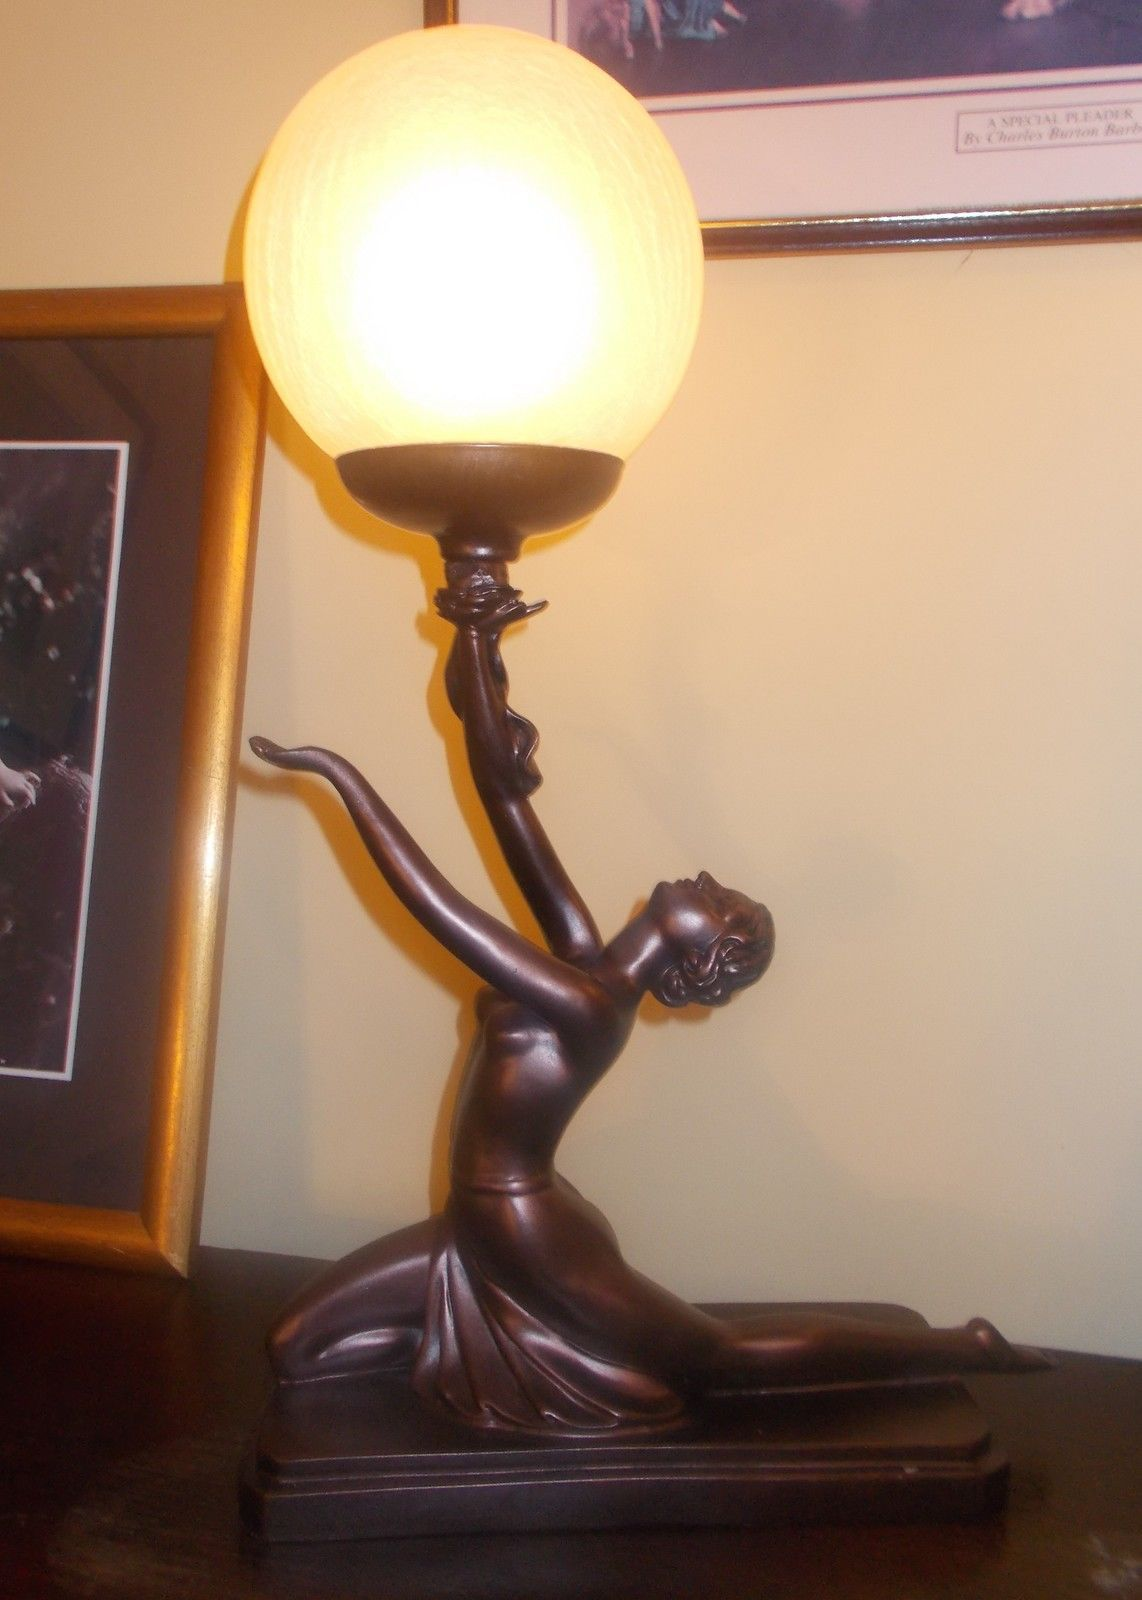 Art deco lamp bronze nude glass globe lady women figurine vintage art deco lamp bronze nude glass globe lady women figurine vintage table light ebay geotapseo Image collections